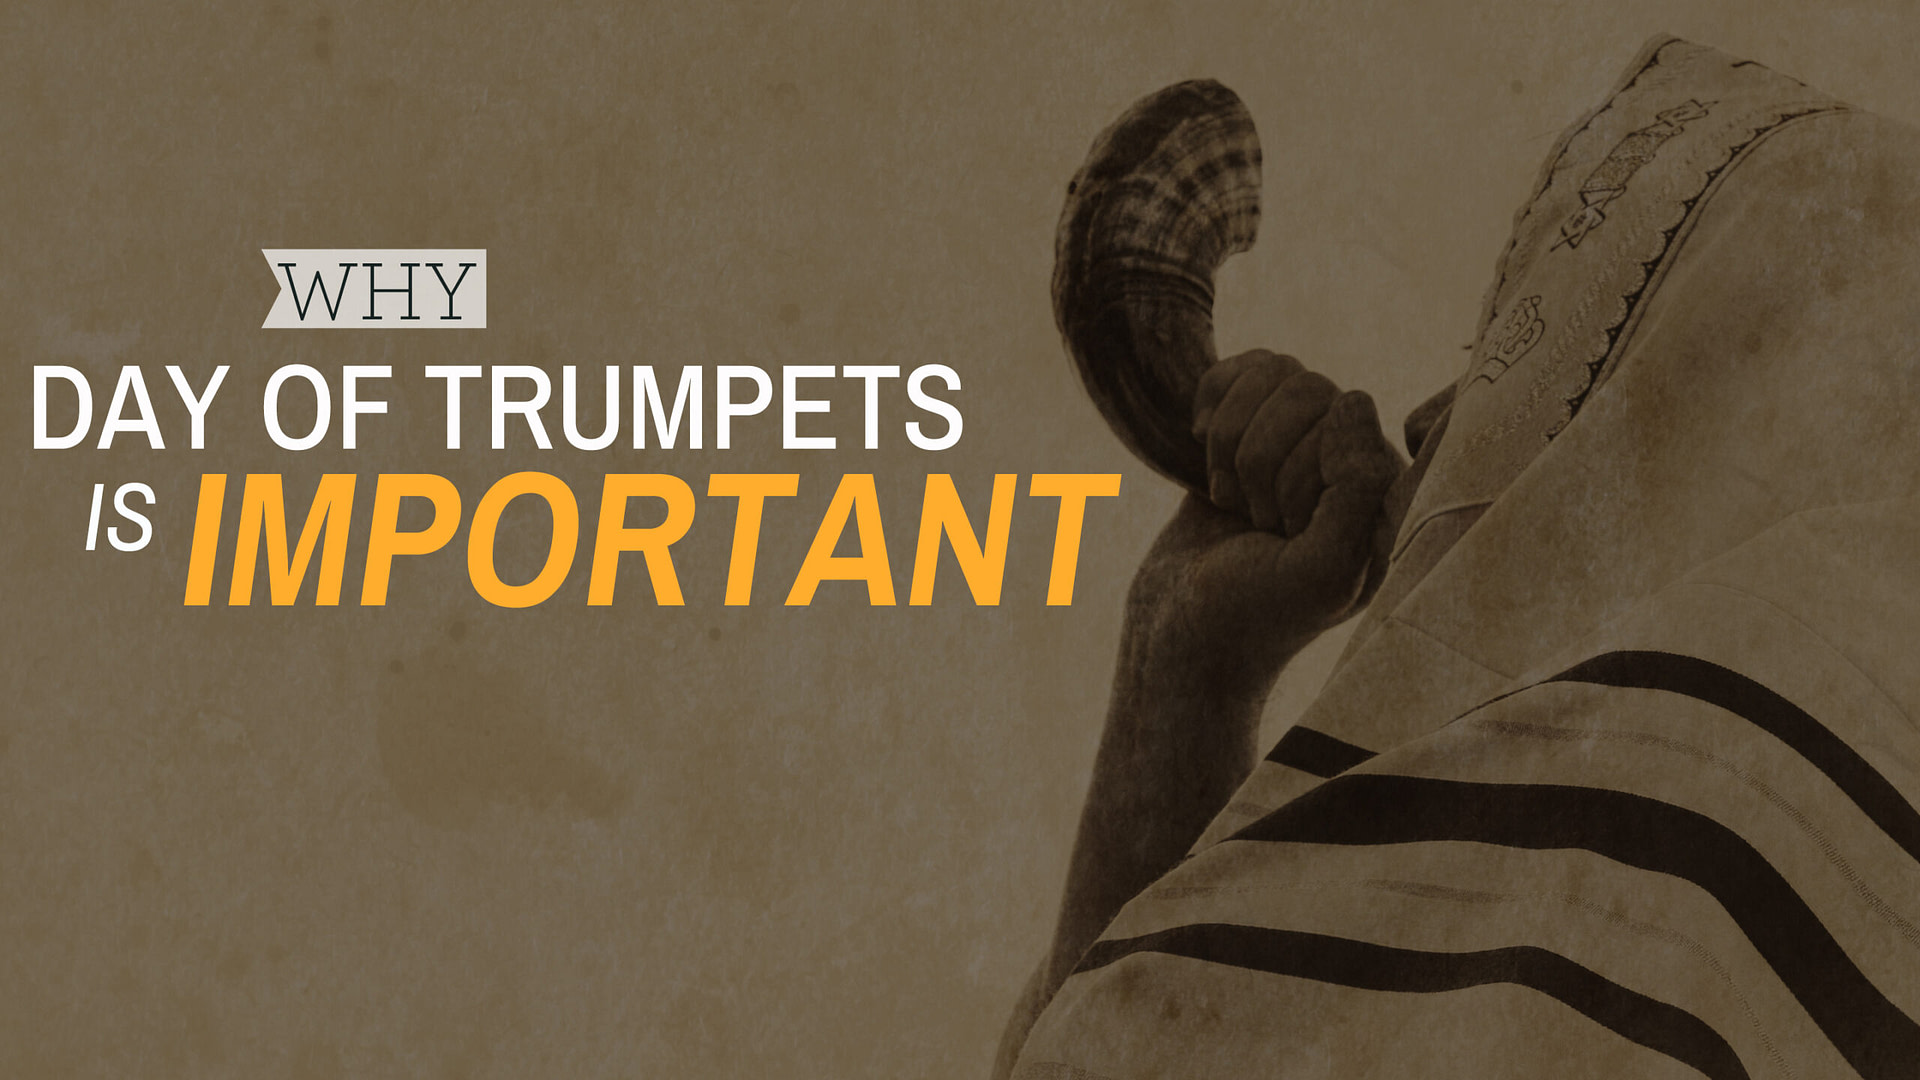 Why Day of Trumpets is Important